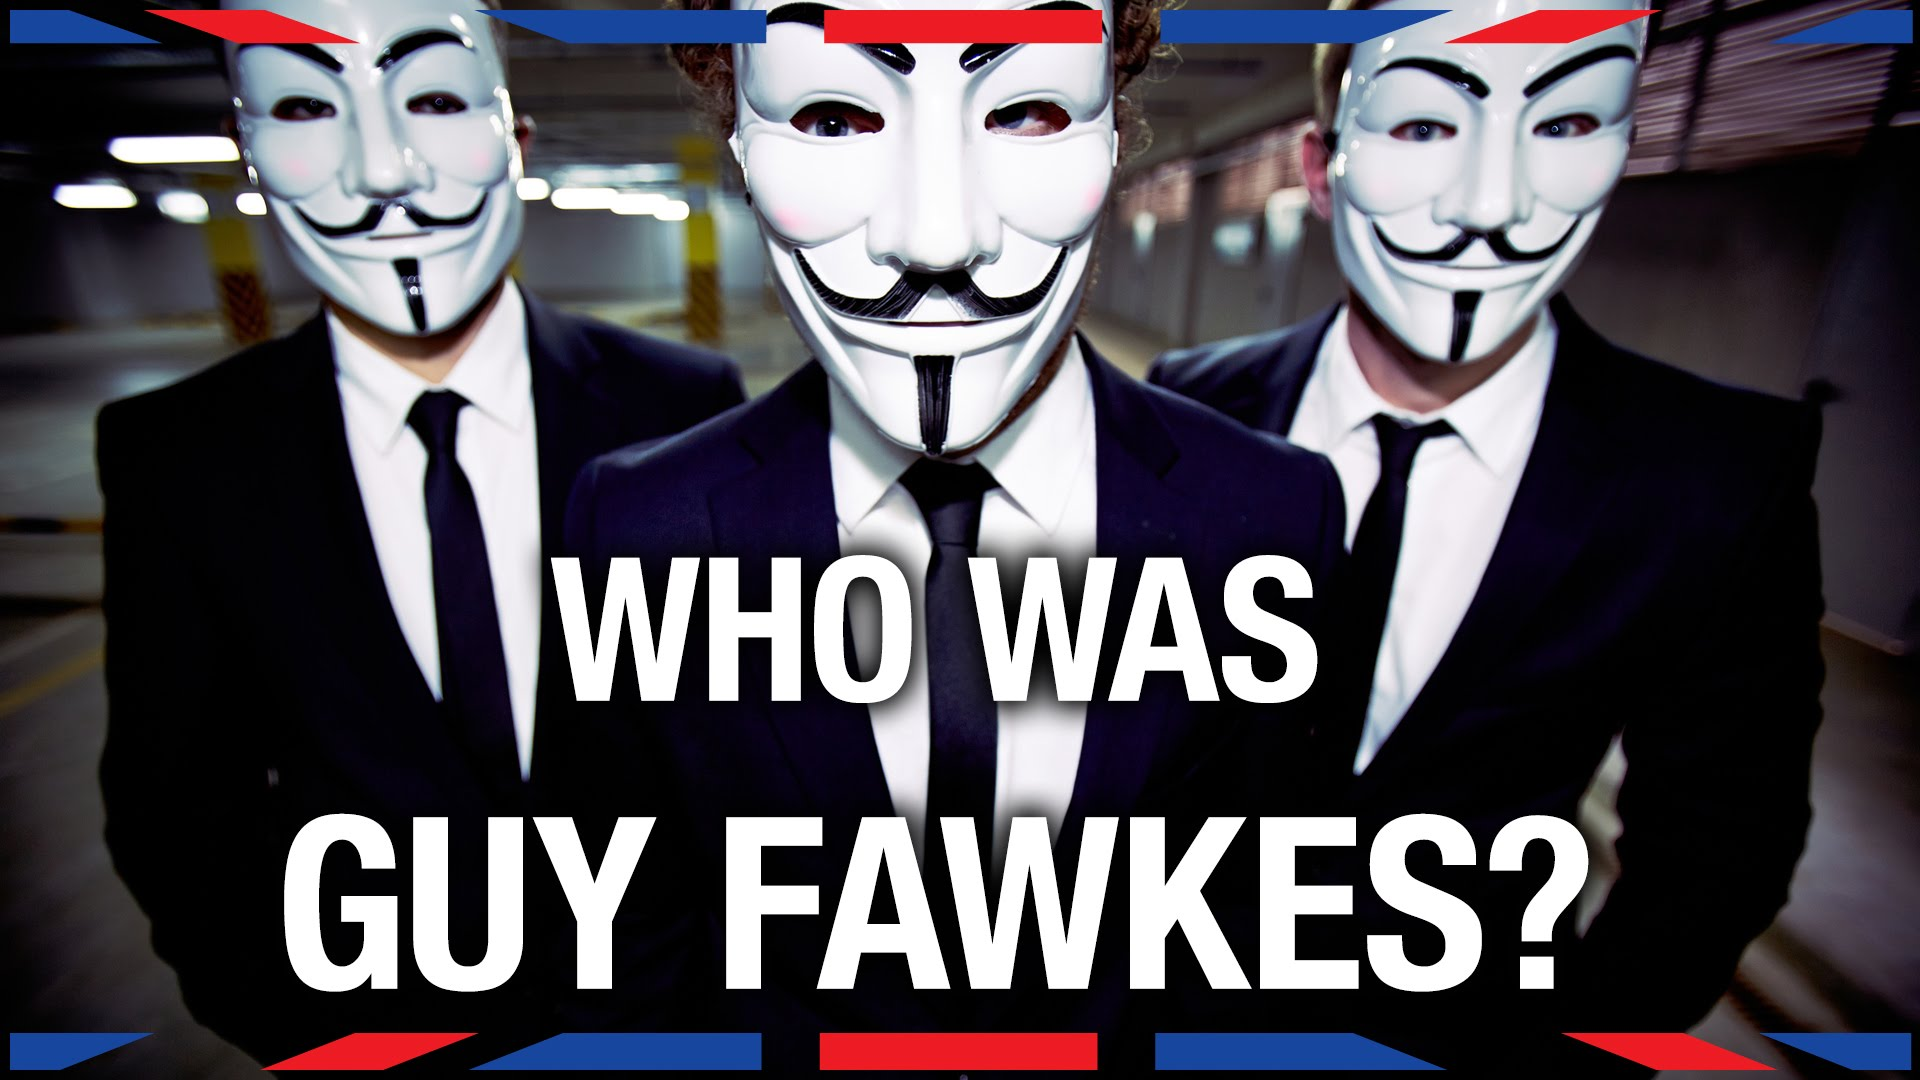 Siobhan Thompson Explains the Significance of Guy Fawkes and the Mask Made in His Image